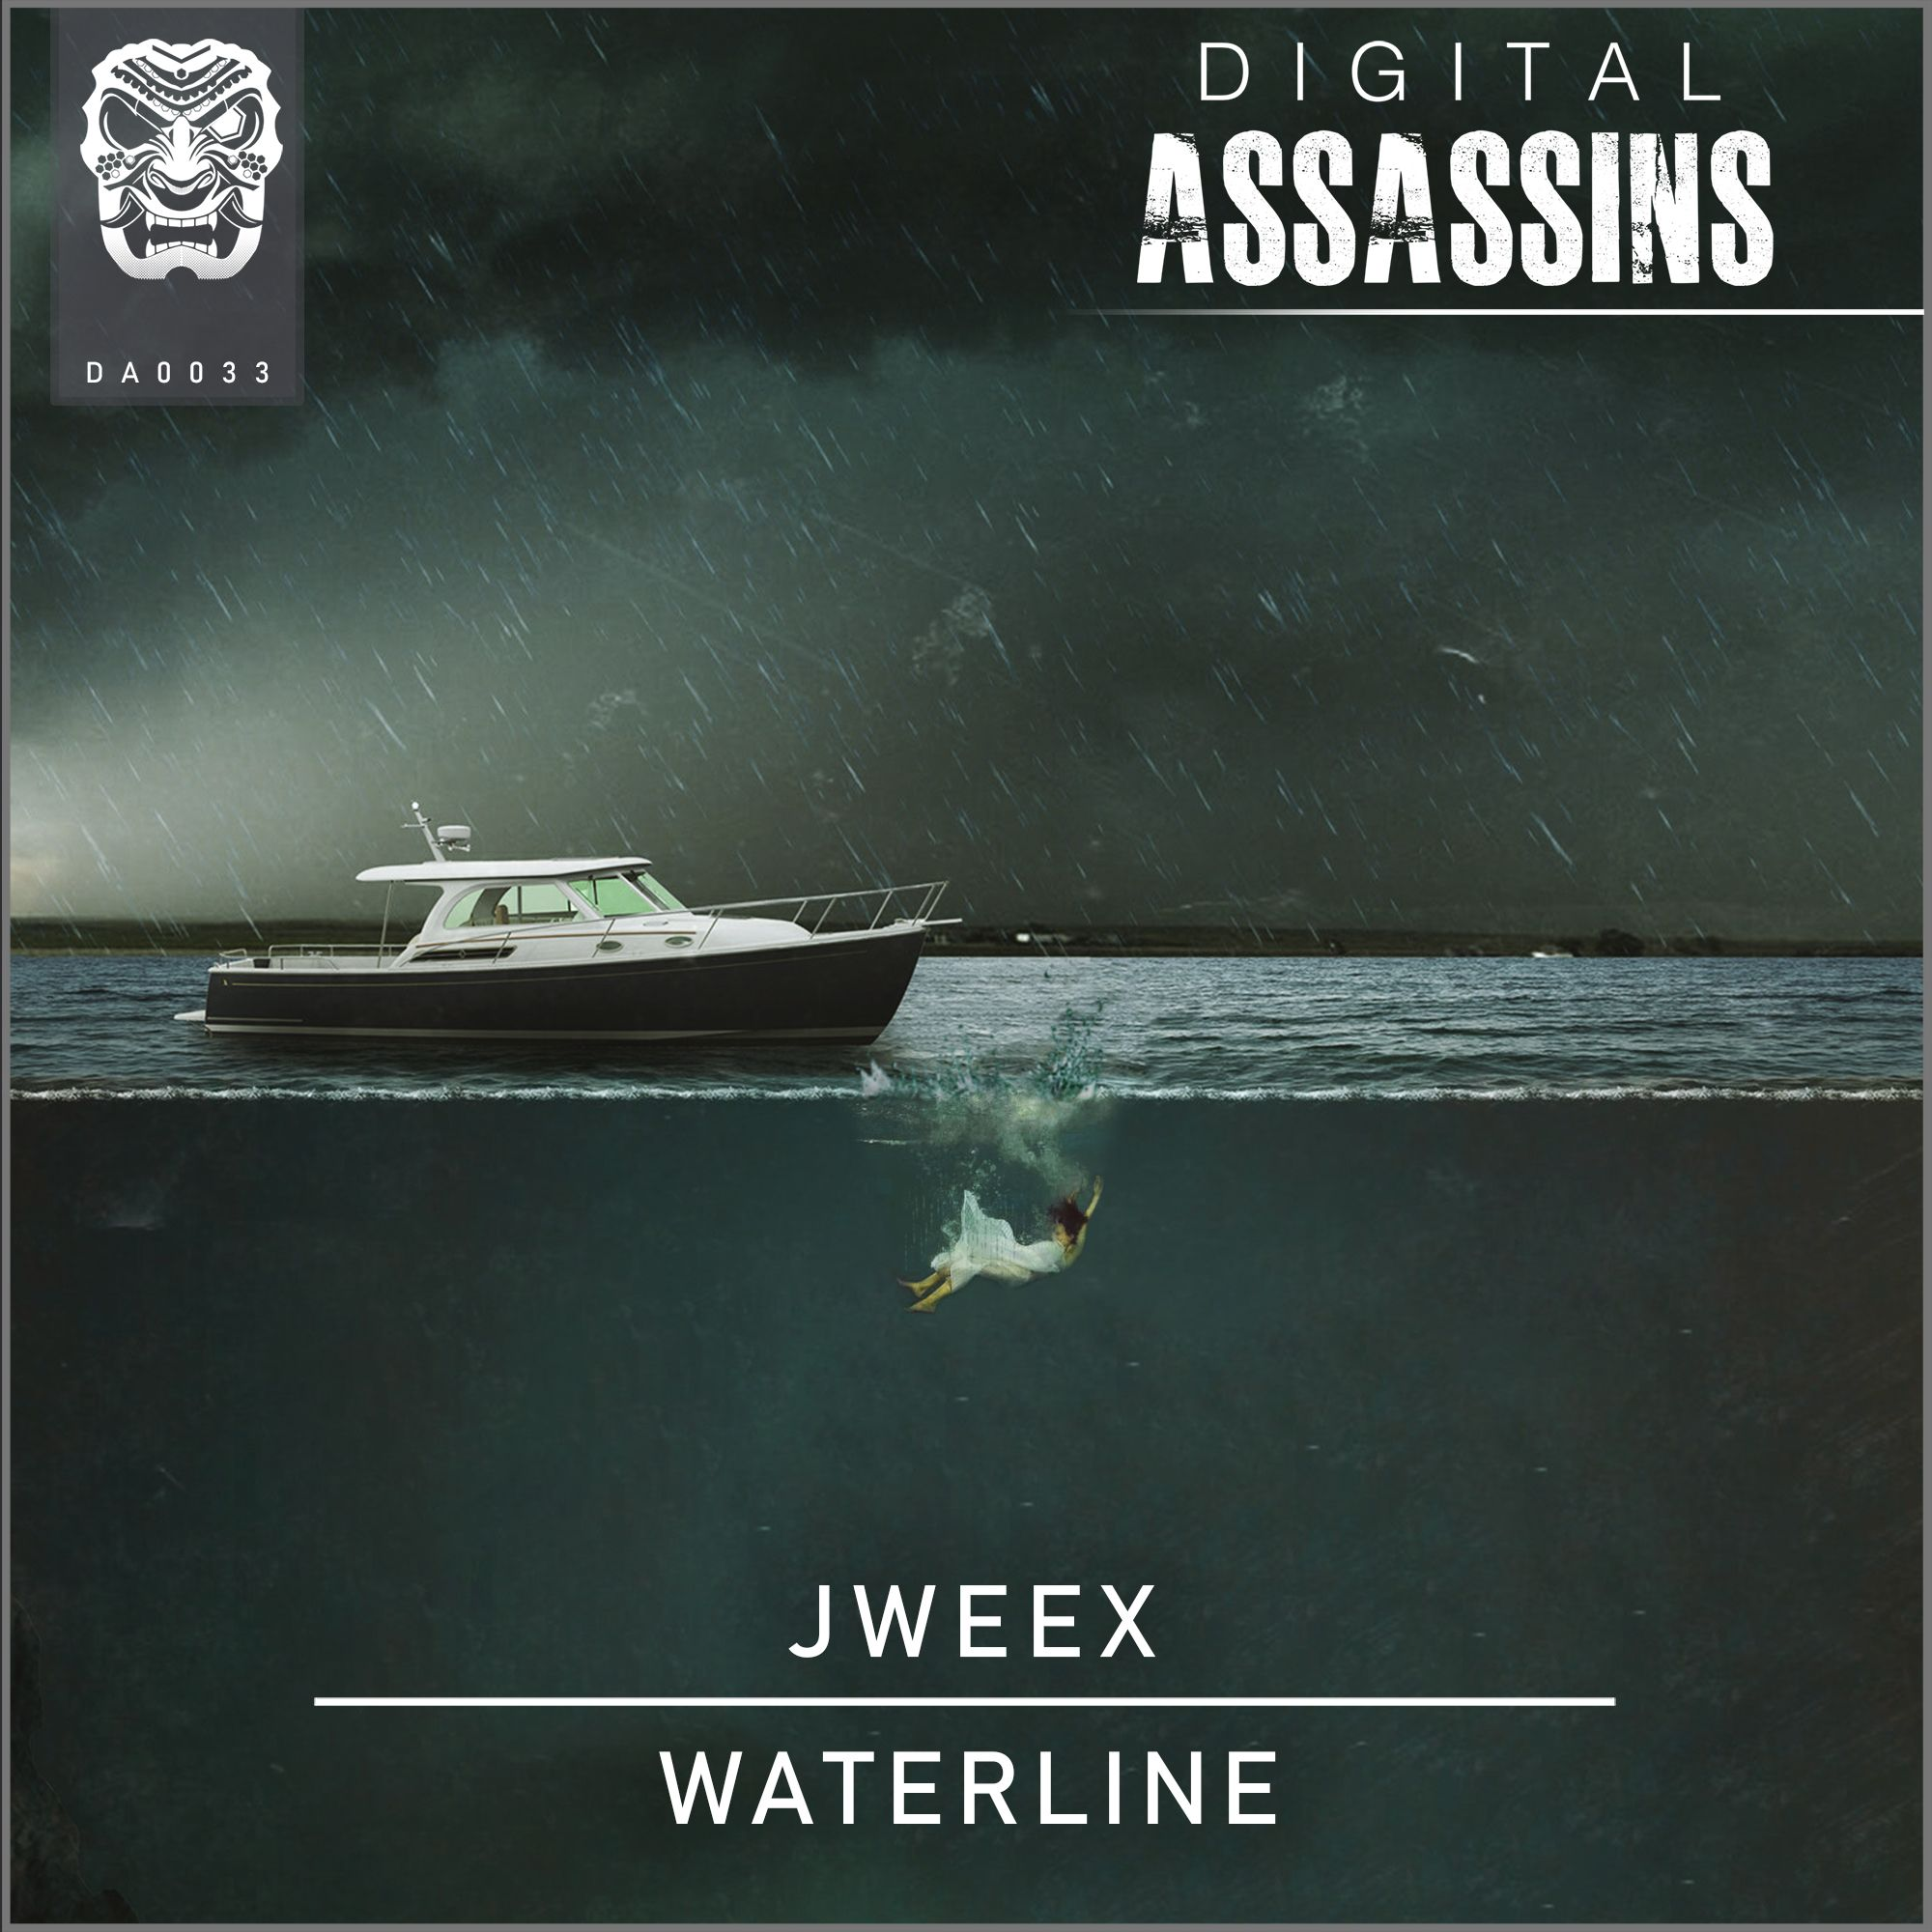 JWEEX - Waterline